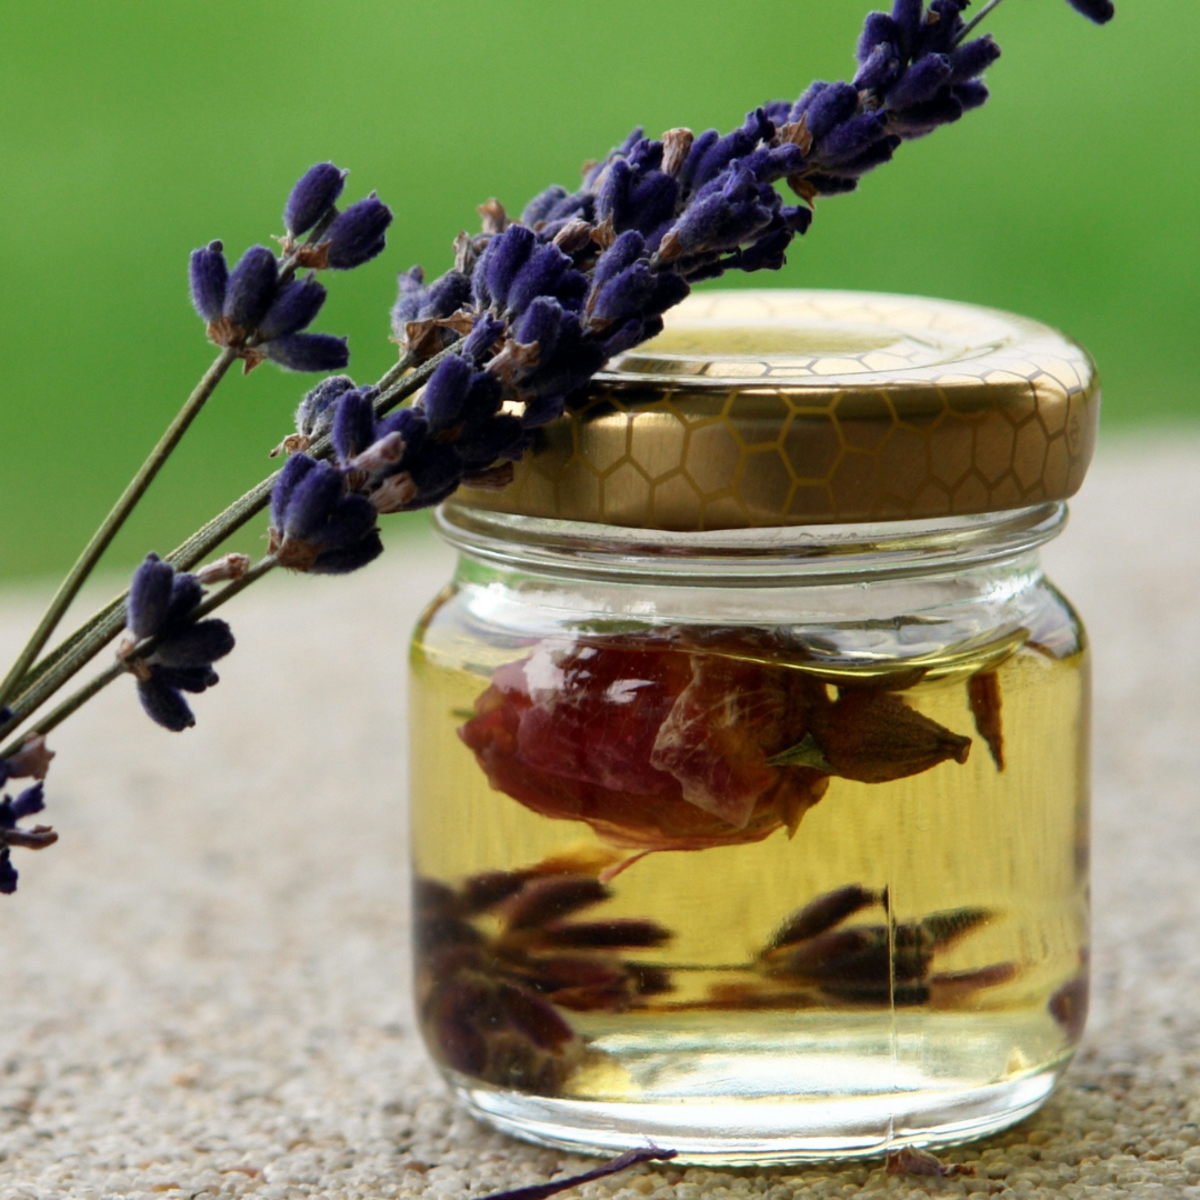 Lavender can be incorporated into the oil to mask its strong odor.